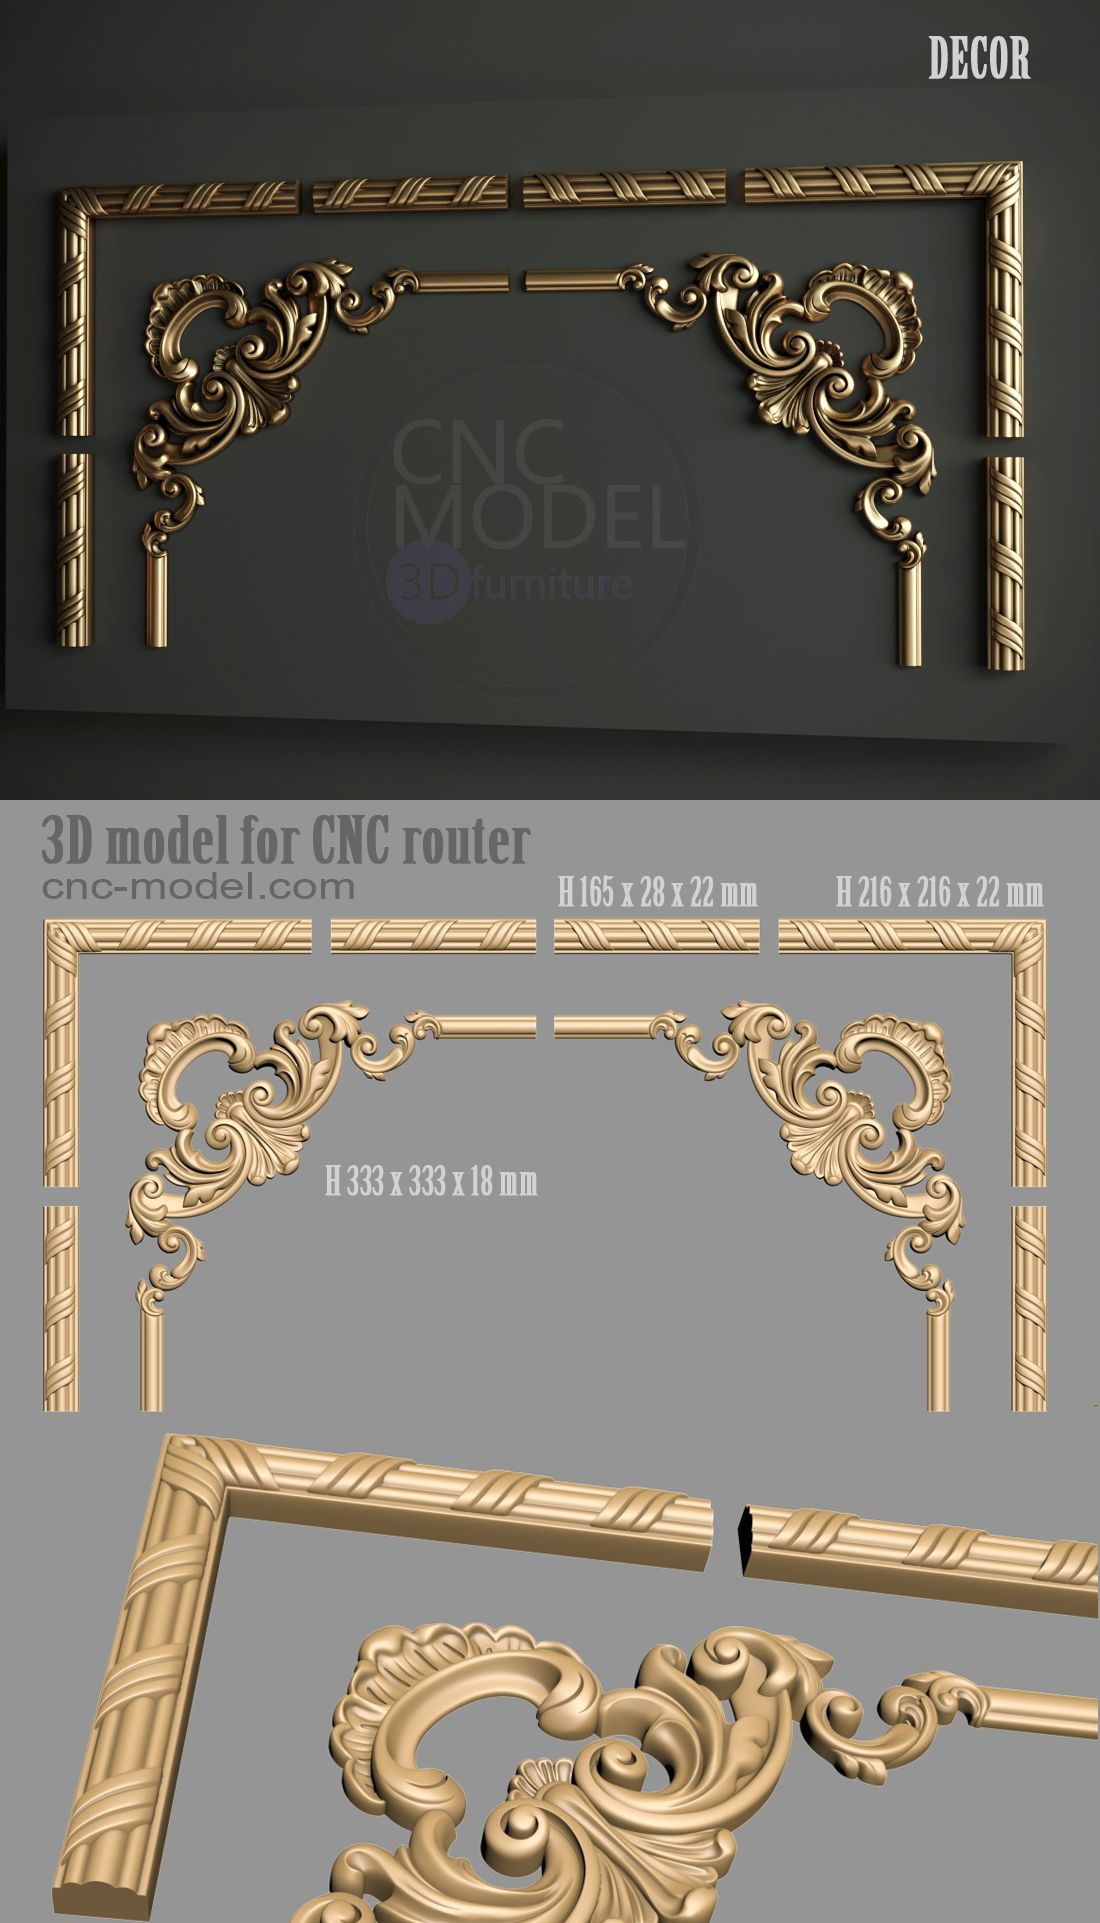 Möbelfüße Barock A1219 Decor Cnc Model 3d Model For Cnc Router 3d Furniture